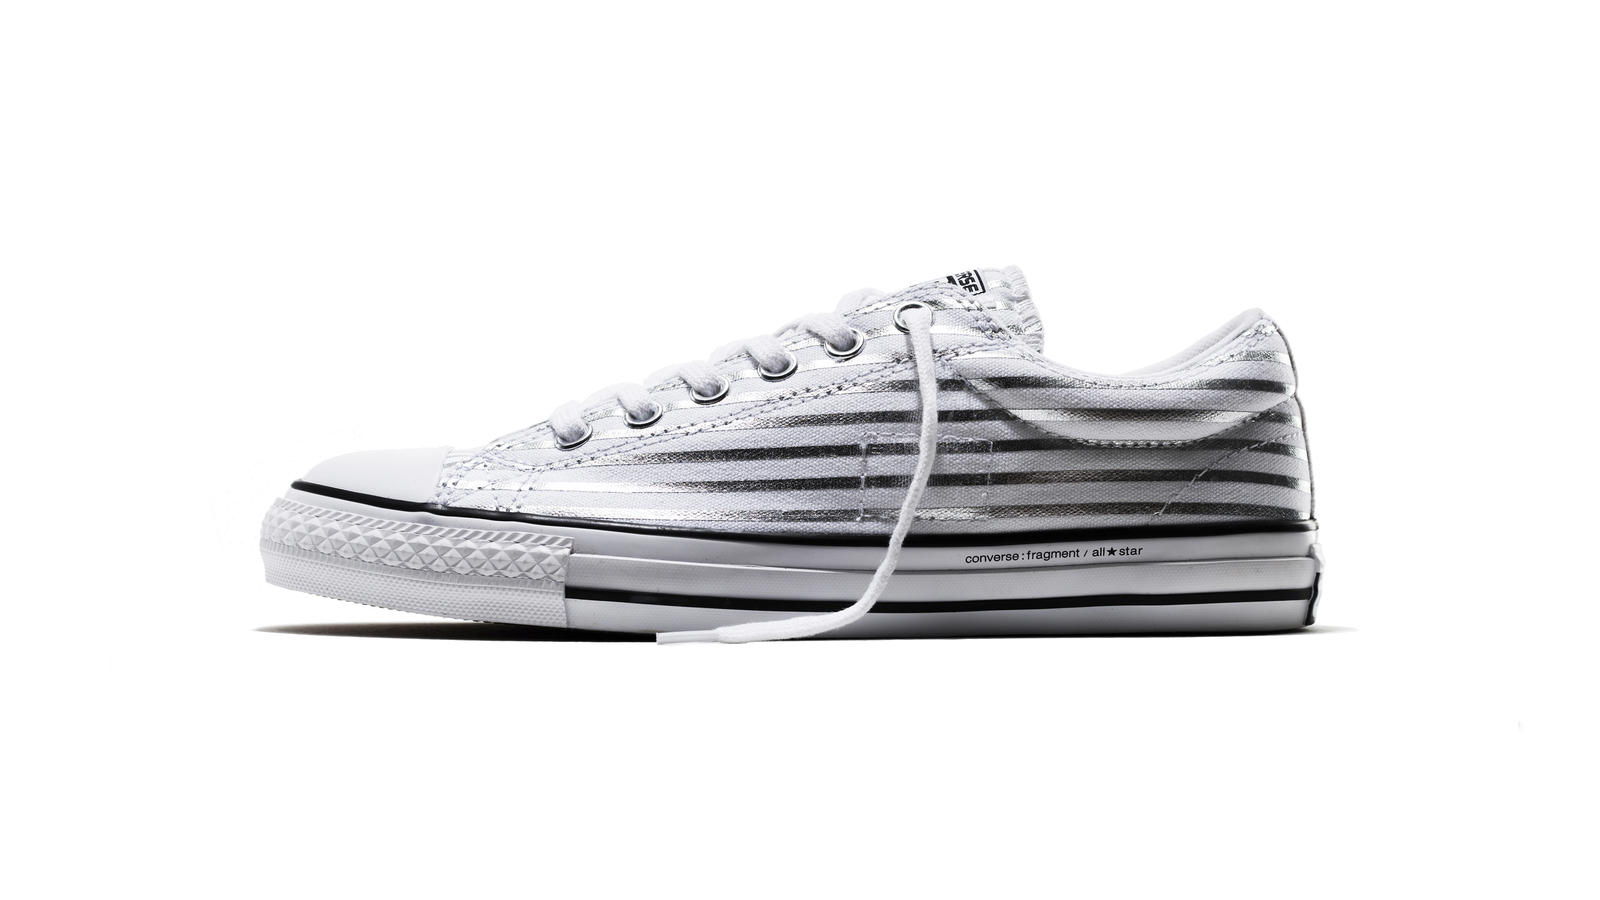 dd993ced4f46 CONVERSE DEBUTS CONS CTS FRAGMENT DESIGN COLLECTION - Nike News